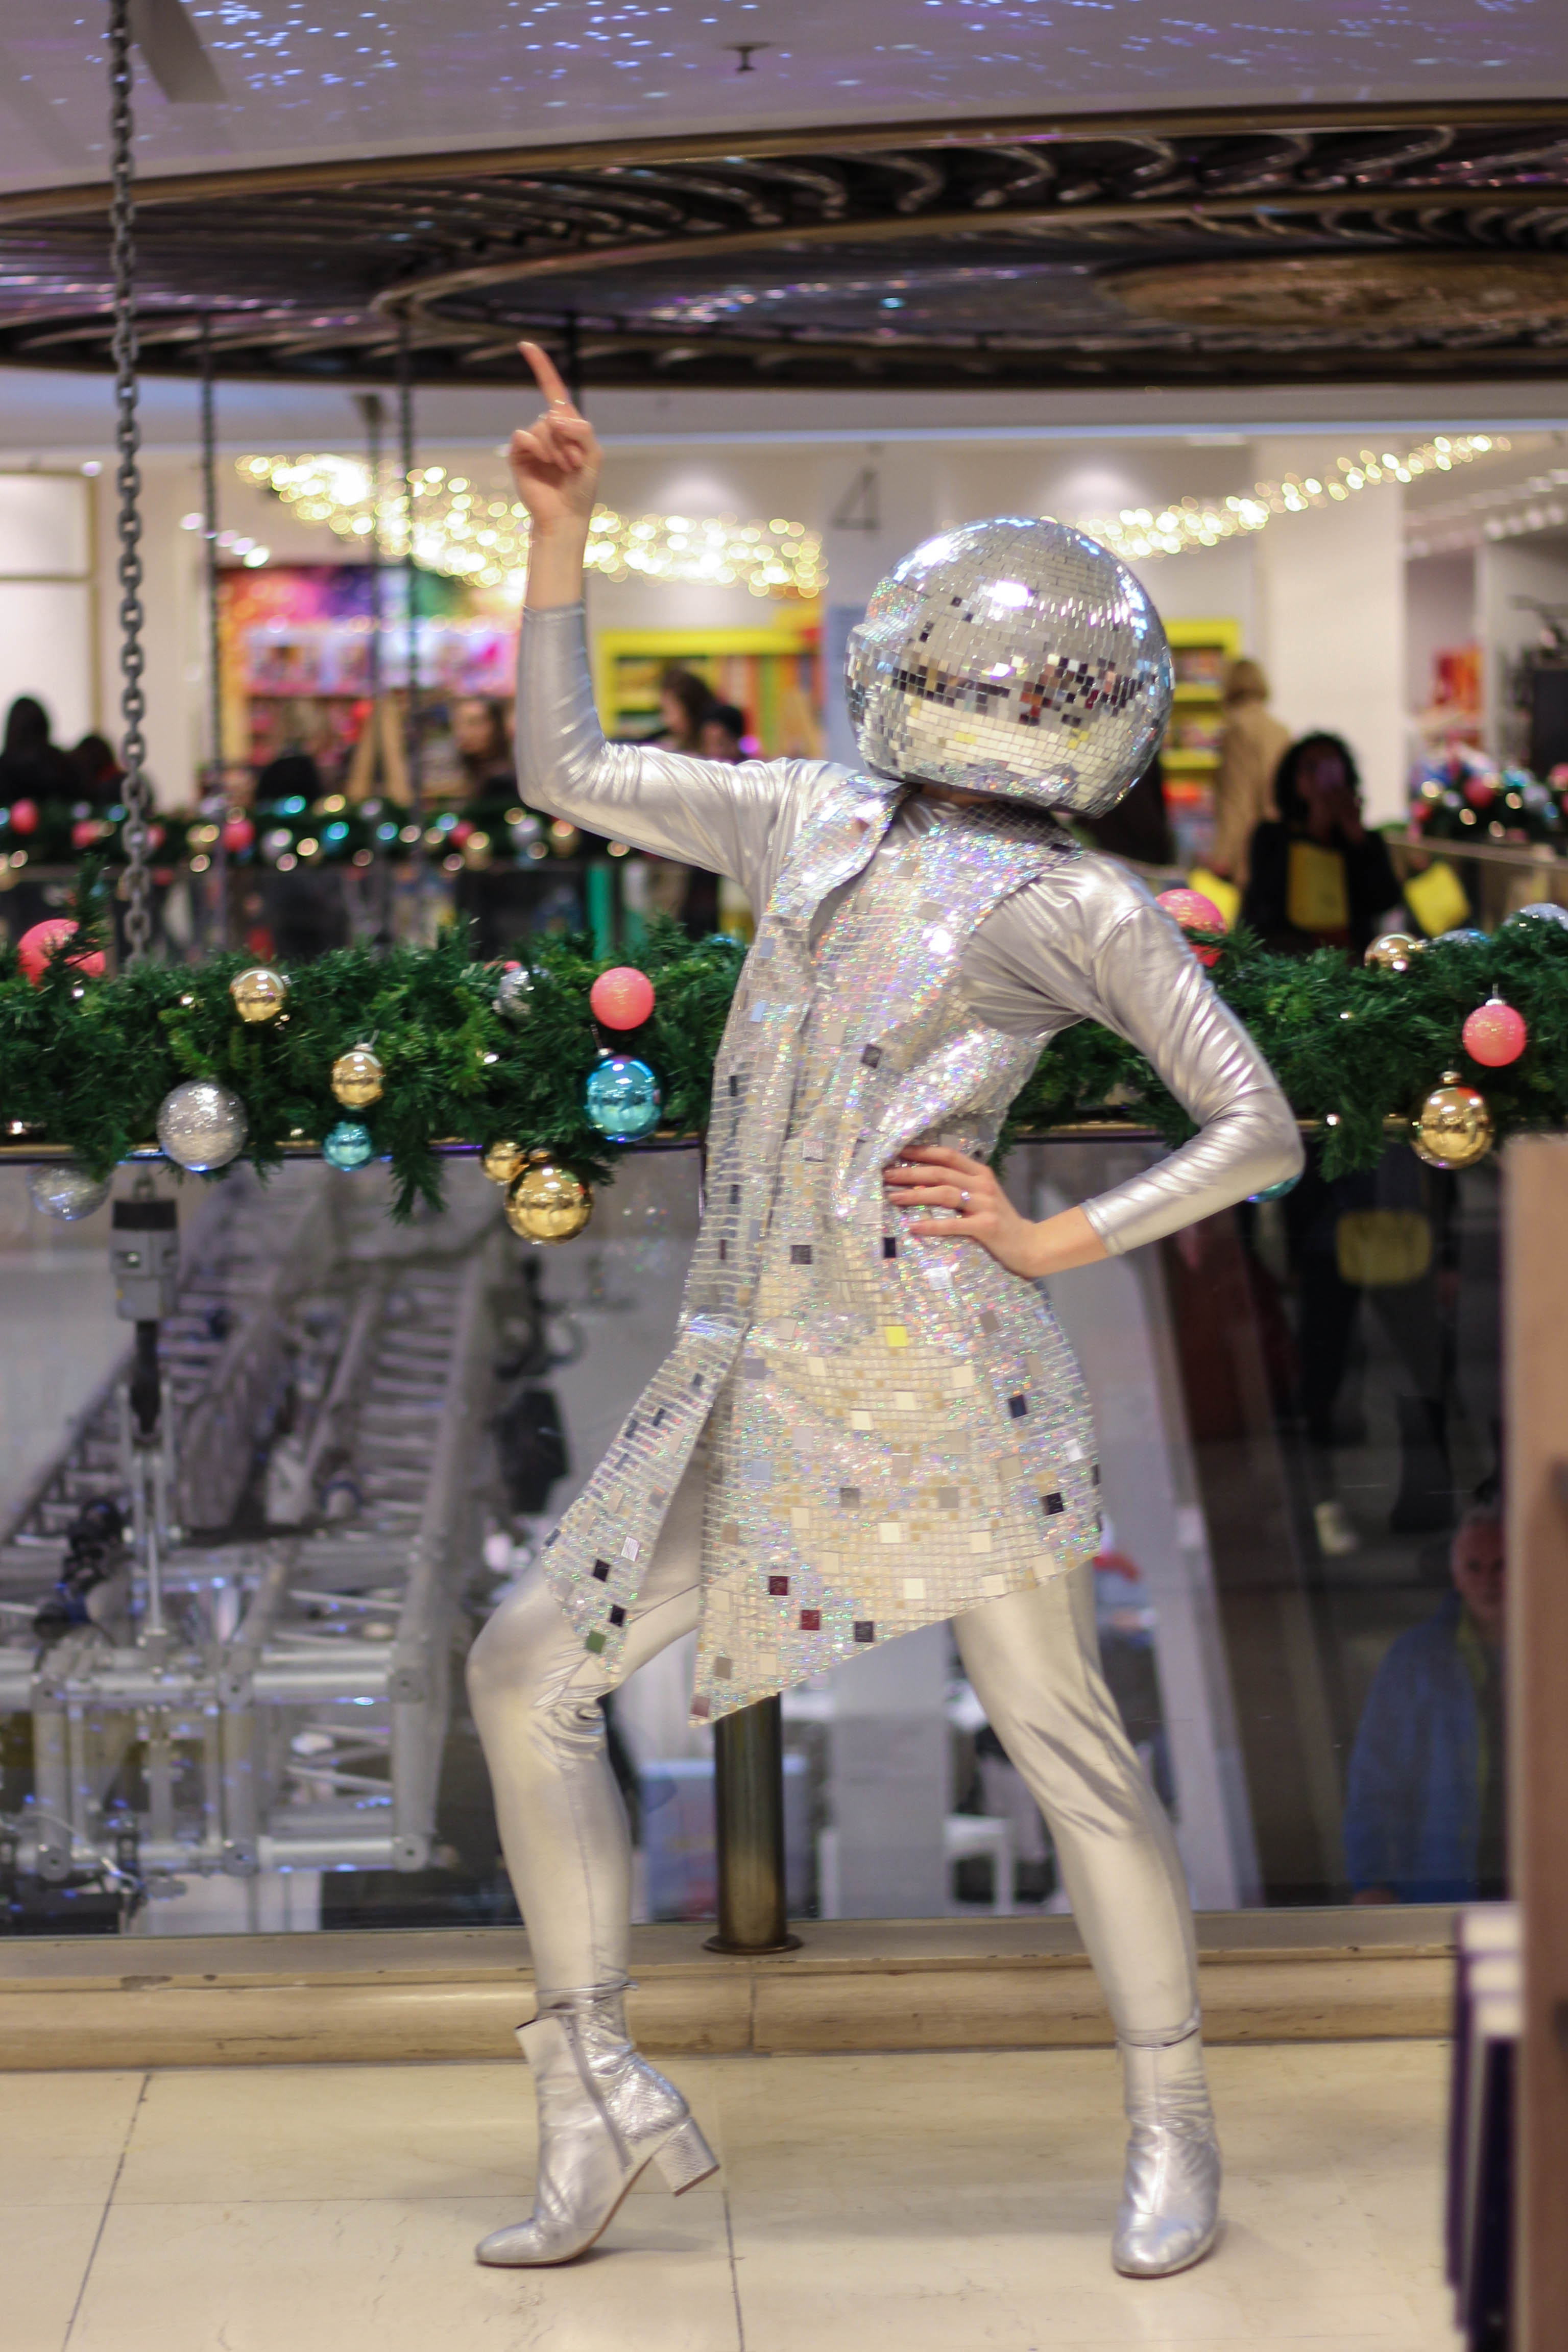 A glamorous dancer wearing bespoke silver sequin costumes with glitter ball helmets pose as part of her dance routine for Selfridges Christmas Entertainment